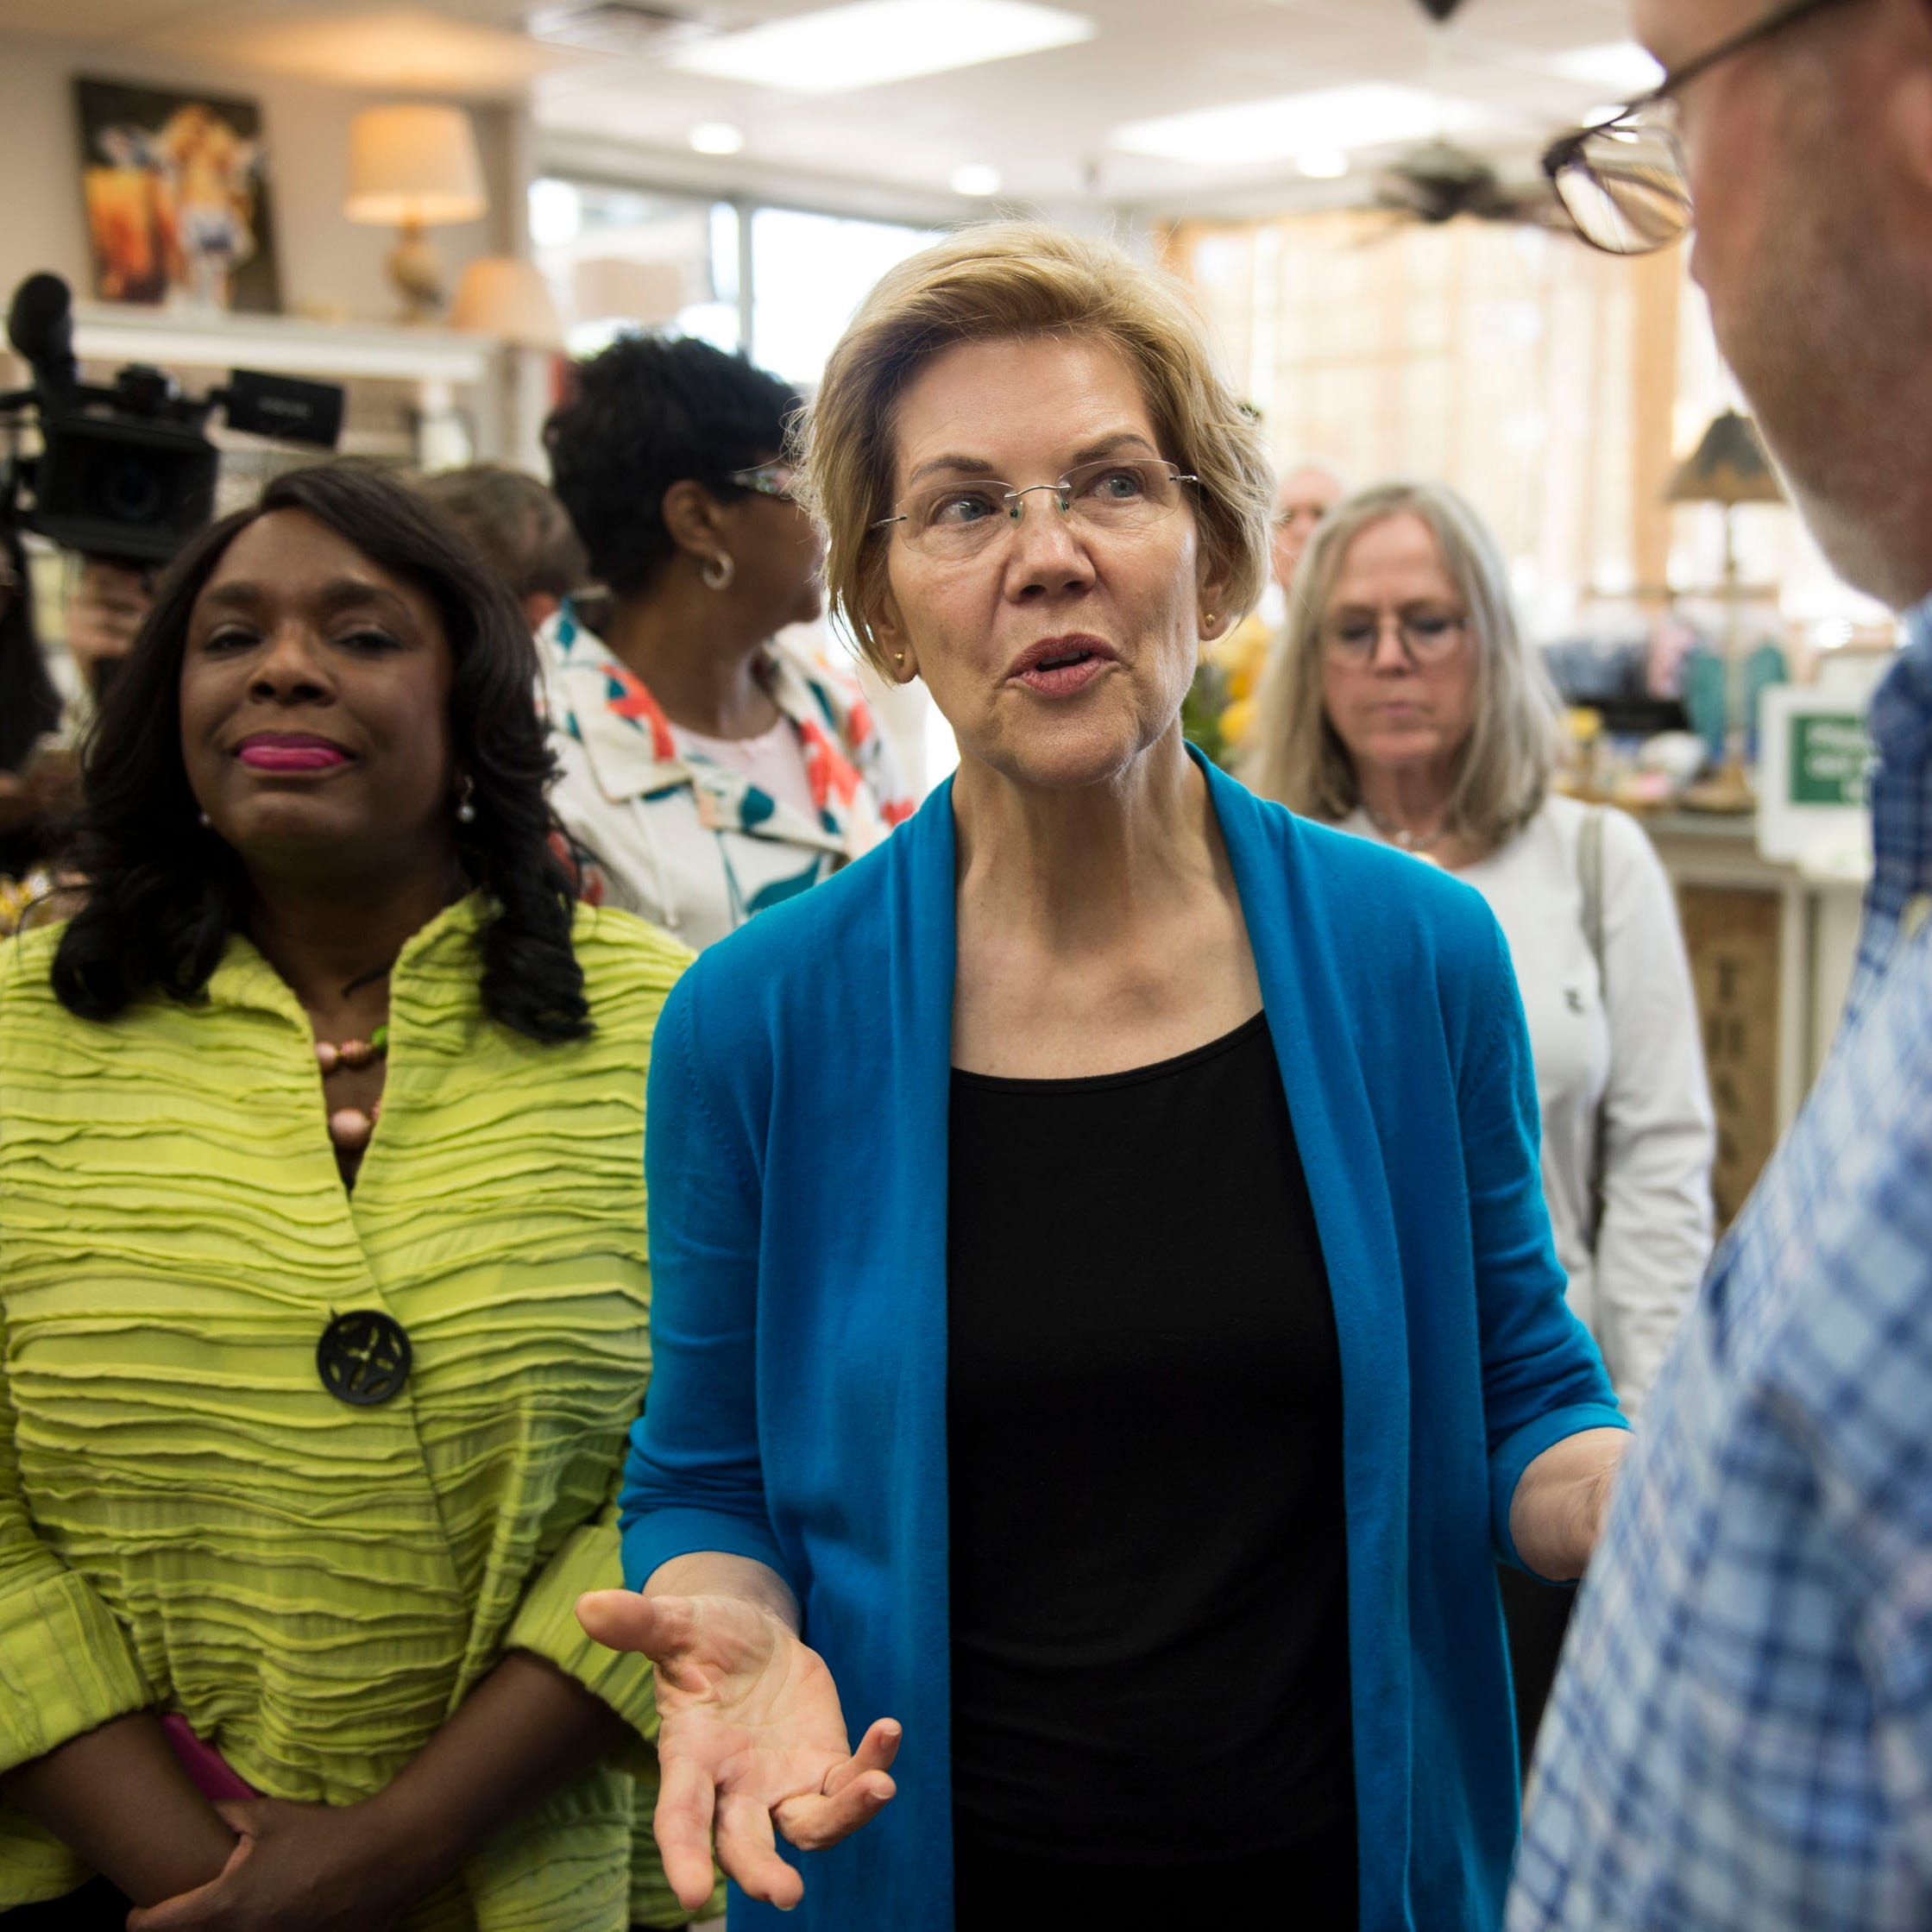 Opinion: Warren's plan doesn't address roots of student loan debt